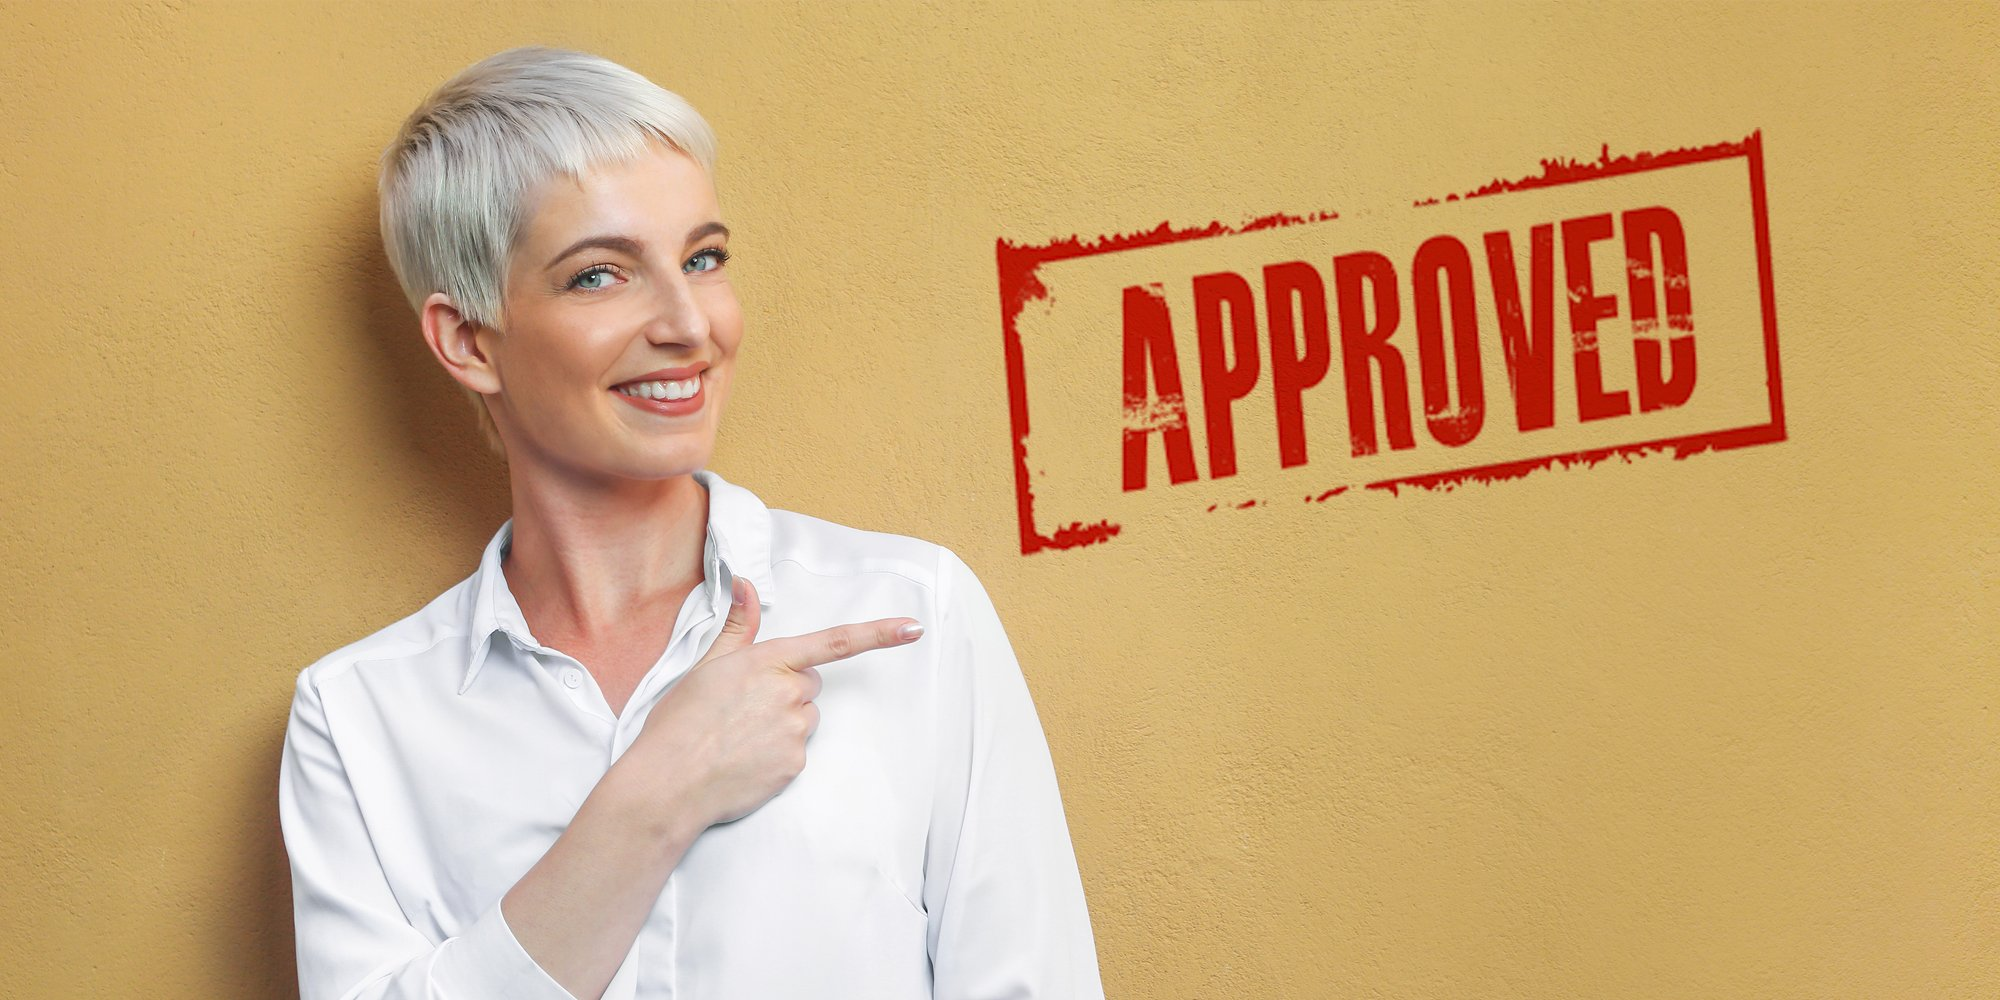 How to Get Your Promotional Apparel Budget Approved